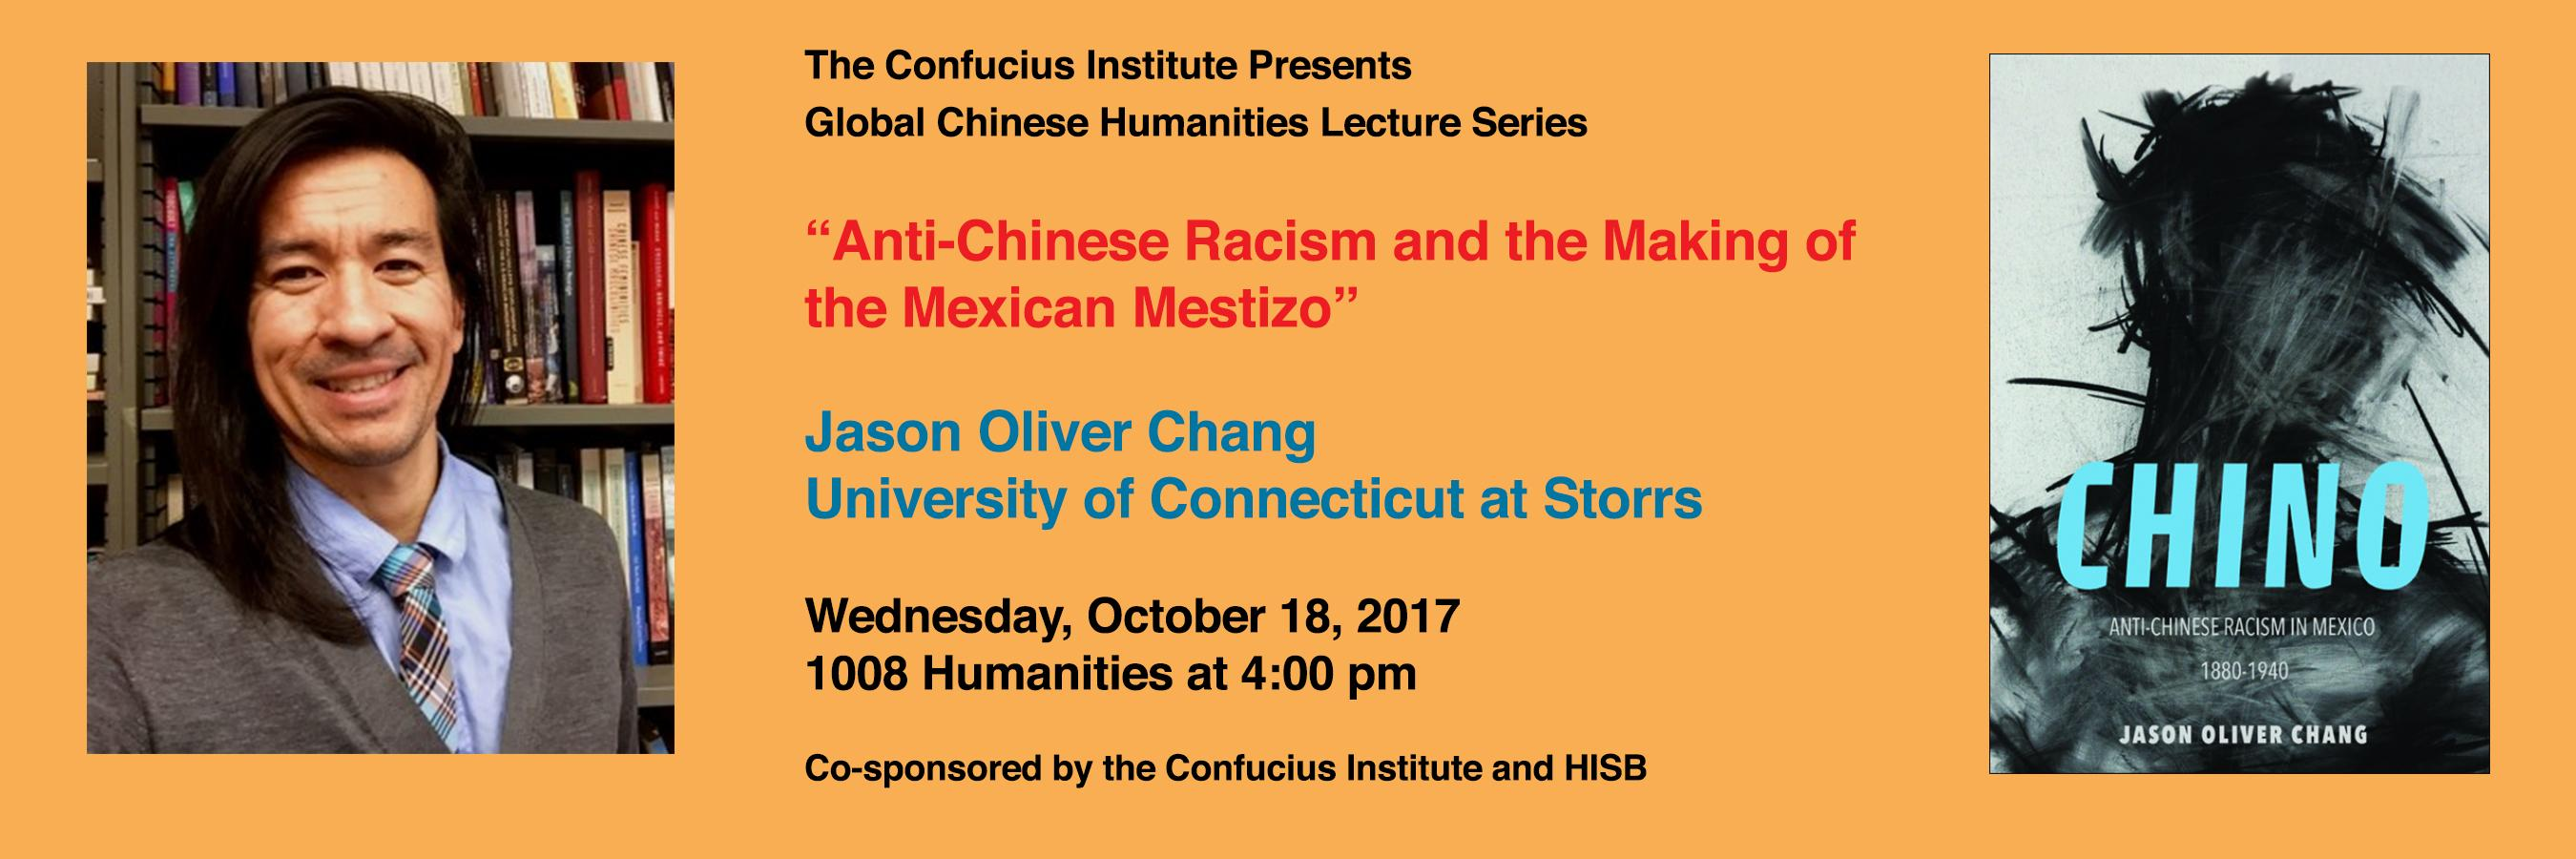 Jason Oliver Chang lecture